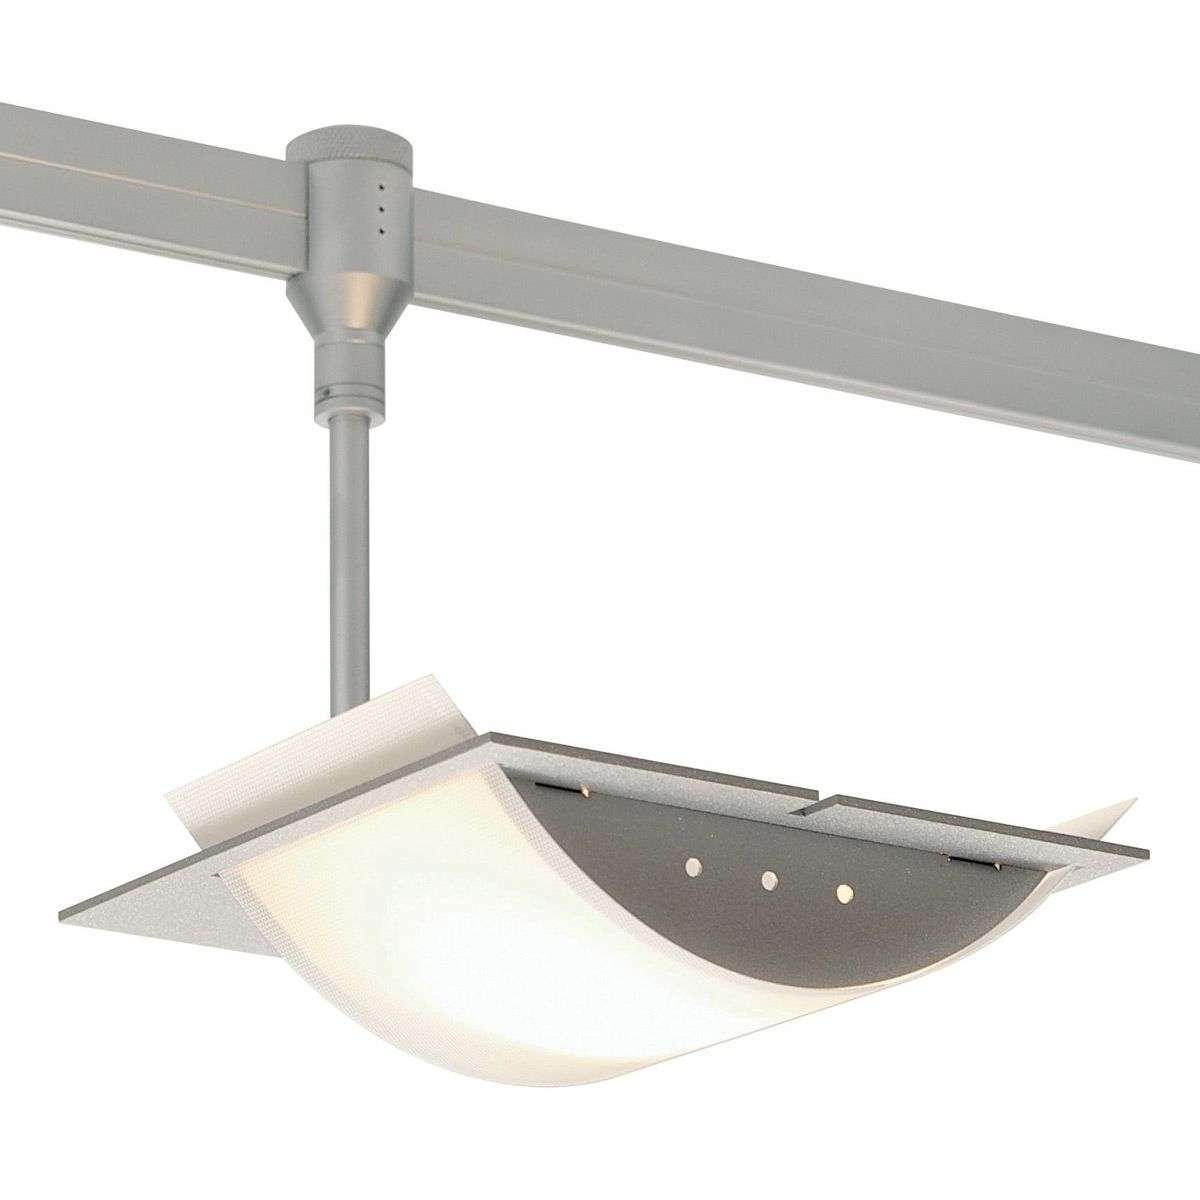 Luminaire HIGH FLIGH GALERIE pour rail CHECK IN-7250269-31